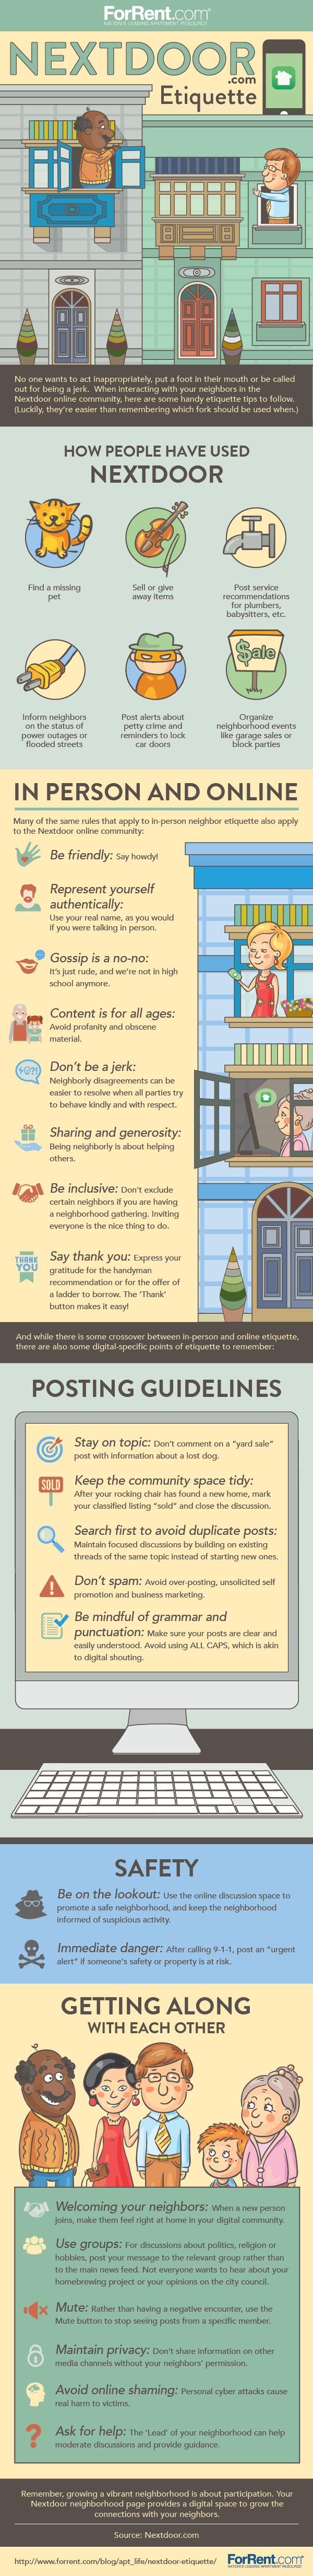 Etiquette Tips for Interacting on the Nextdoor Community #Infographic